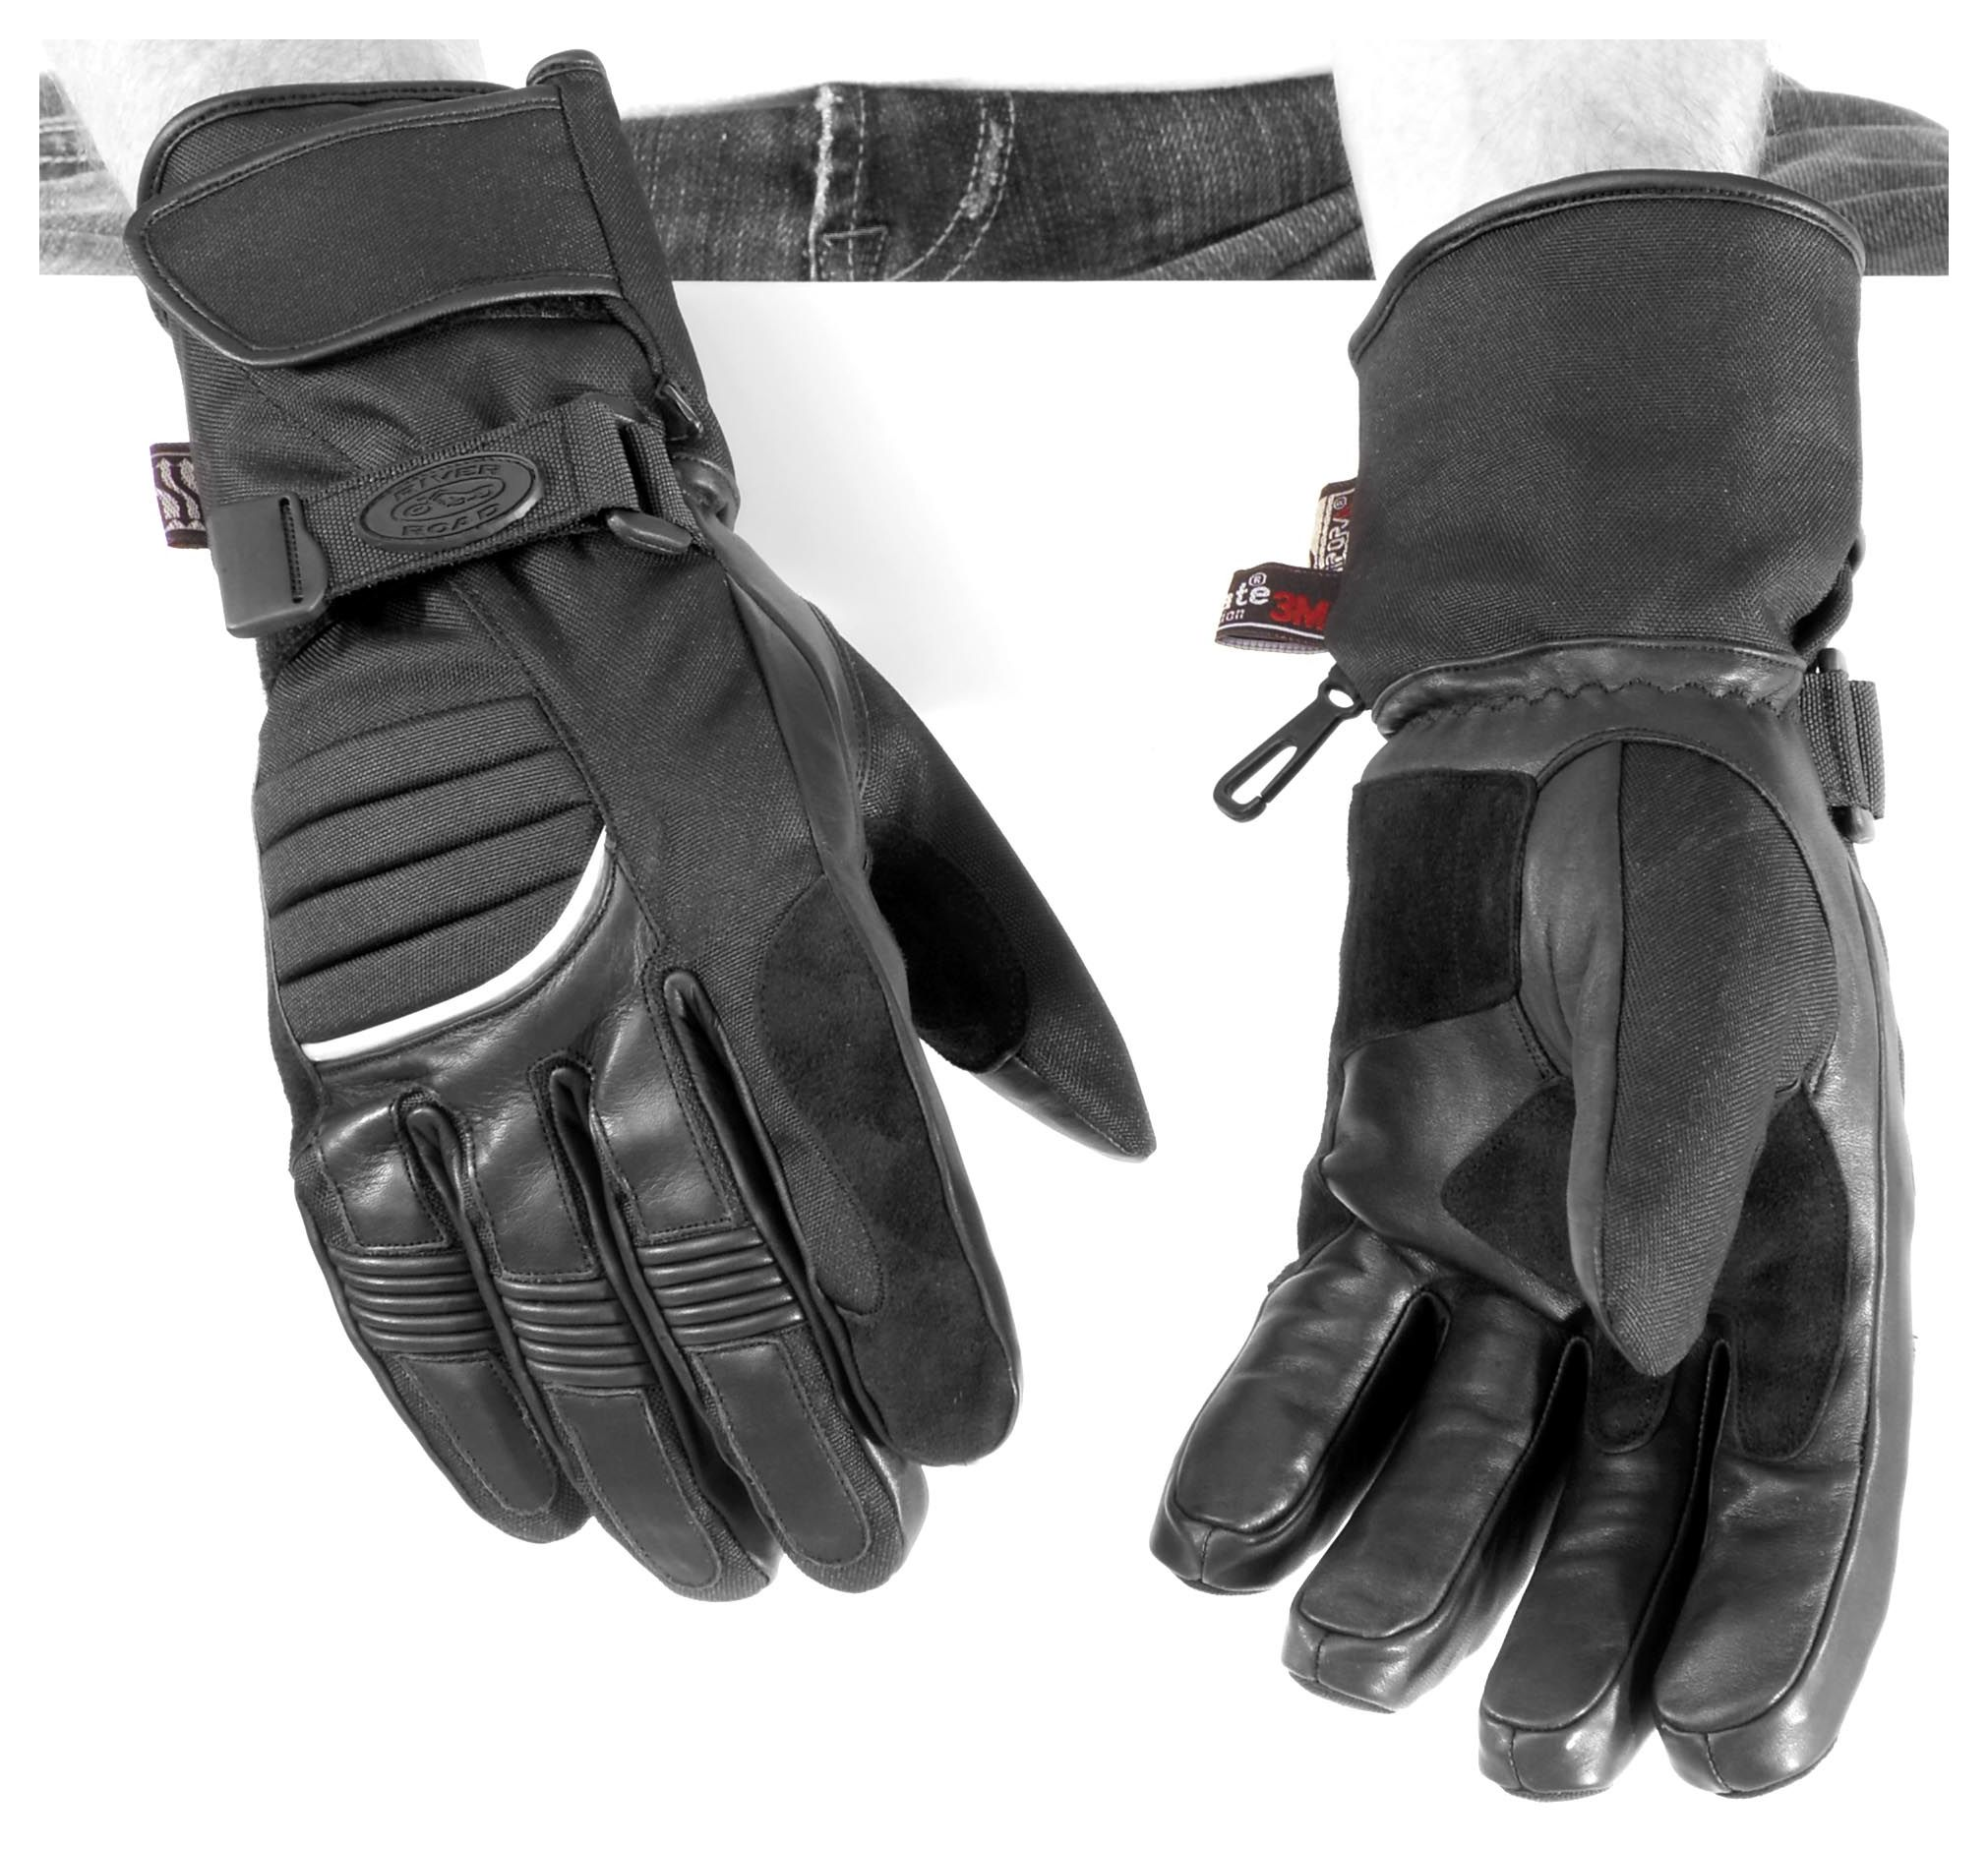 Motorcycle gloves tight or loose - Motorcycle Gloves Tight Or Loose 31